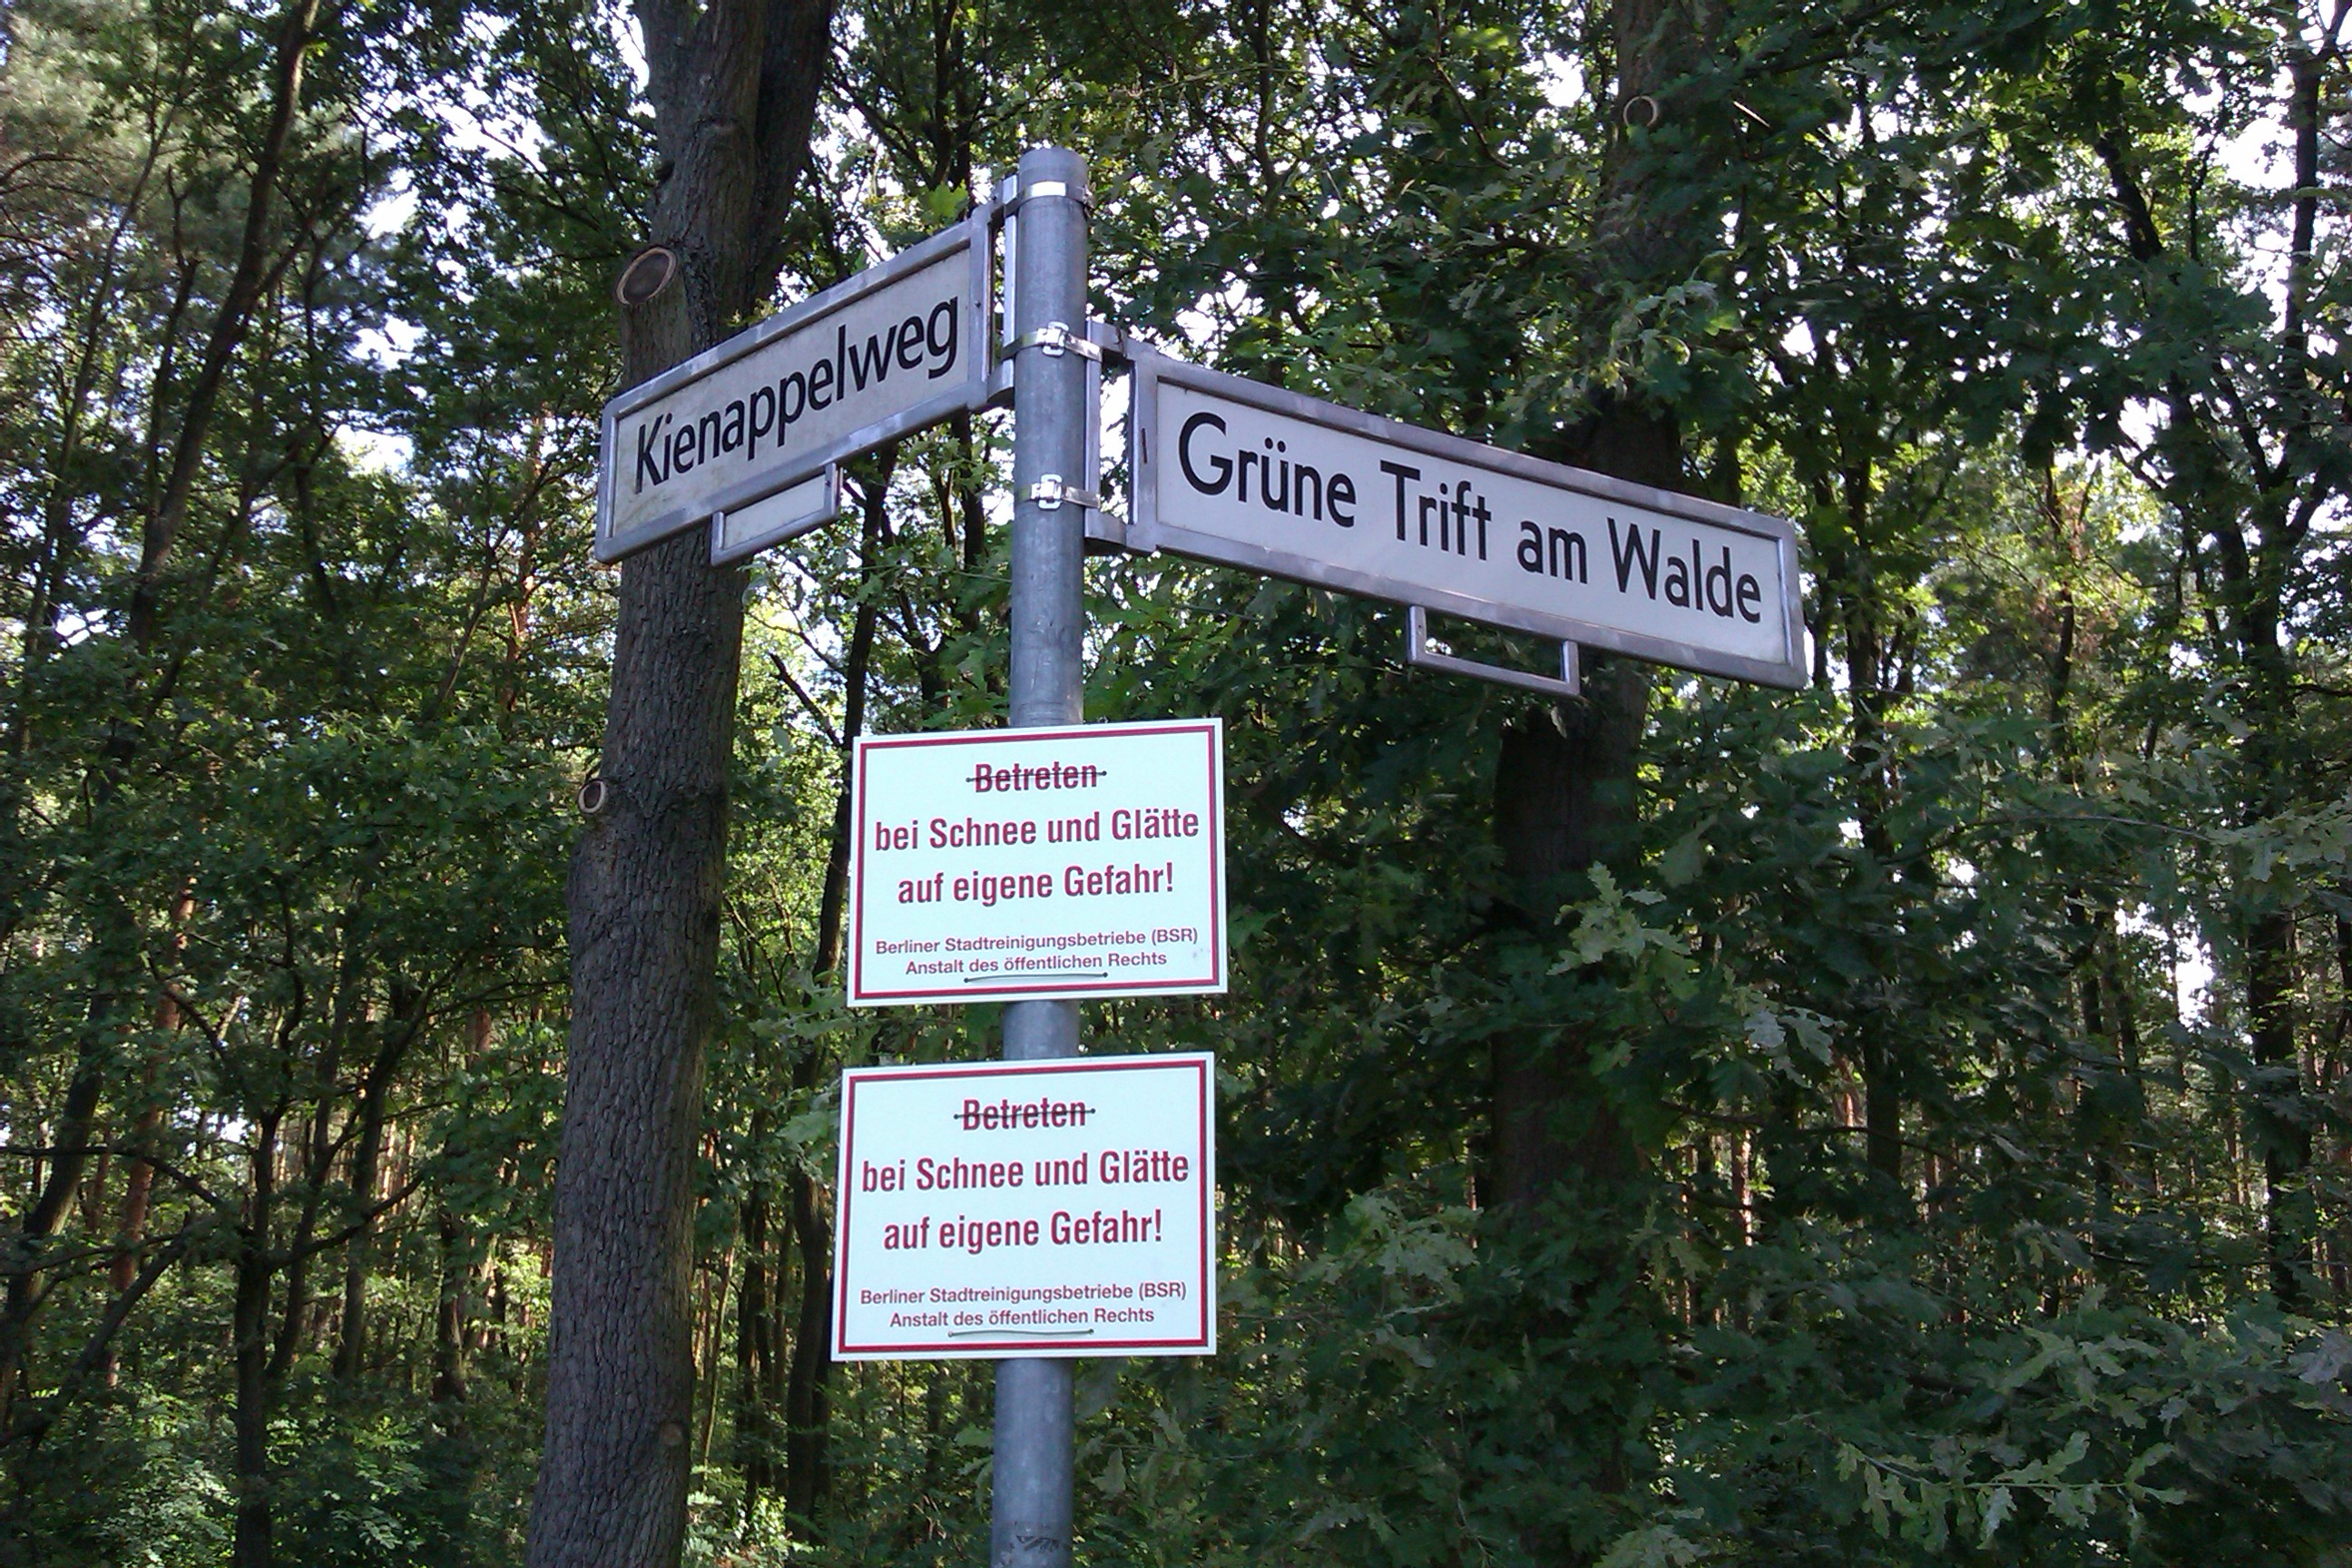 File:Redundantly redundant road sign.jpg - Wikimedia Commons